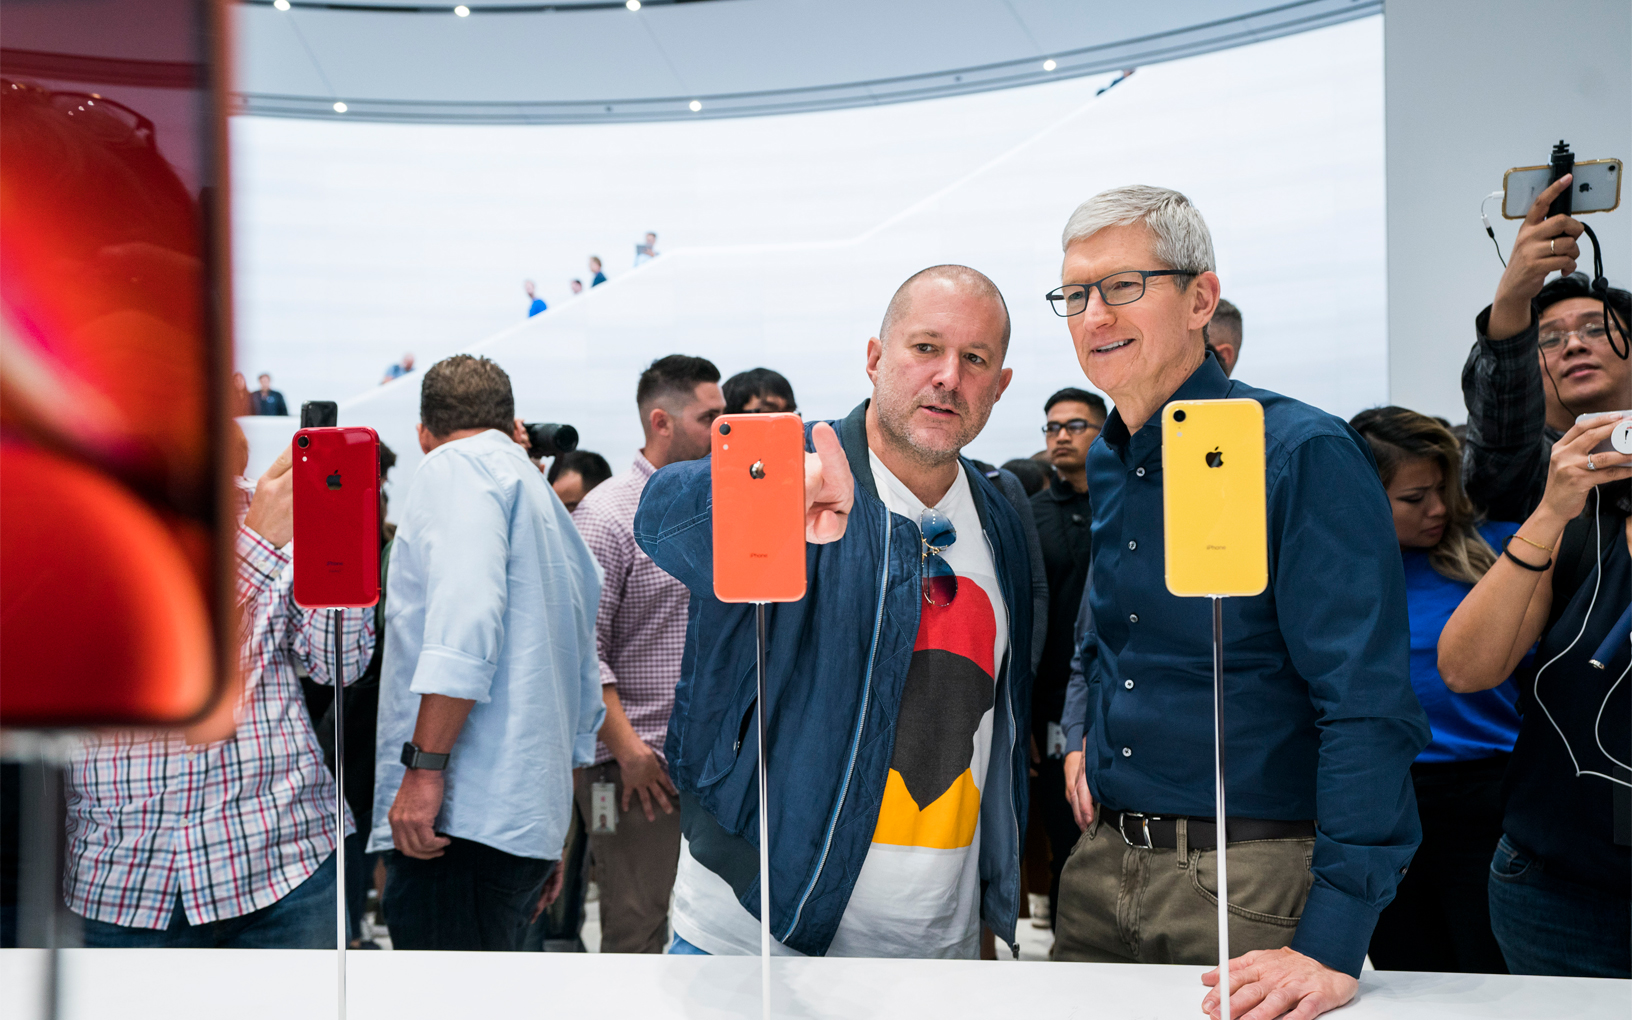 https://www.apple.com/newsroom/images/people/executives/Apple-update-tim-cook-jonathan-ive-062619_big.jpg.large_2x.jpg